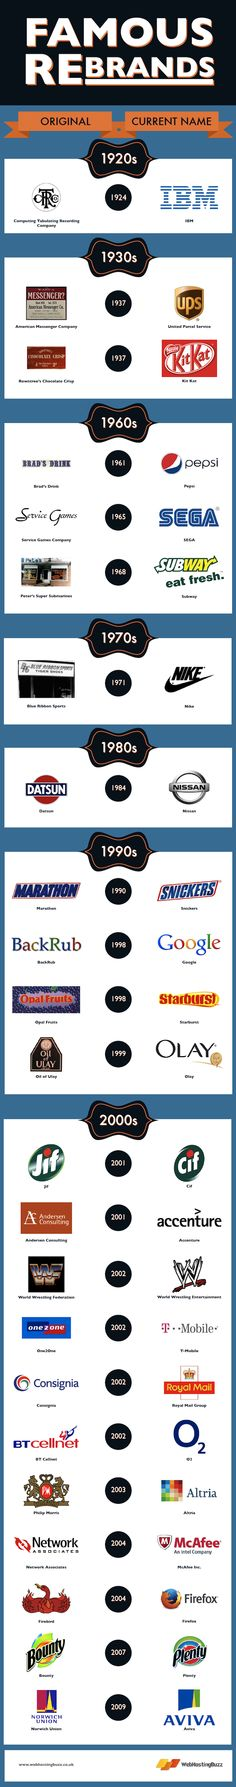 Rebranding Examples of Famous Companies in the Last 100 Years